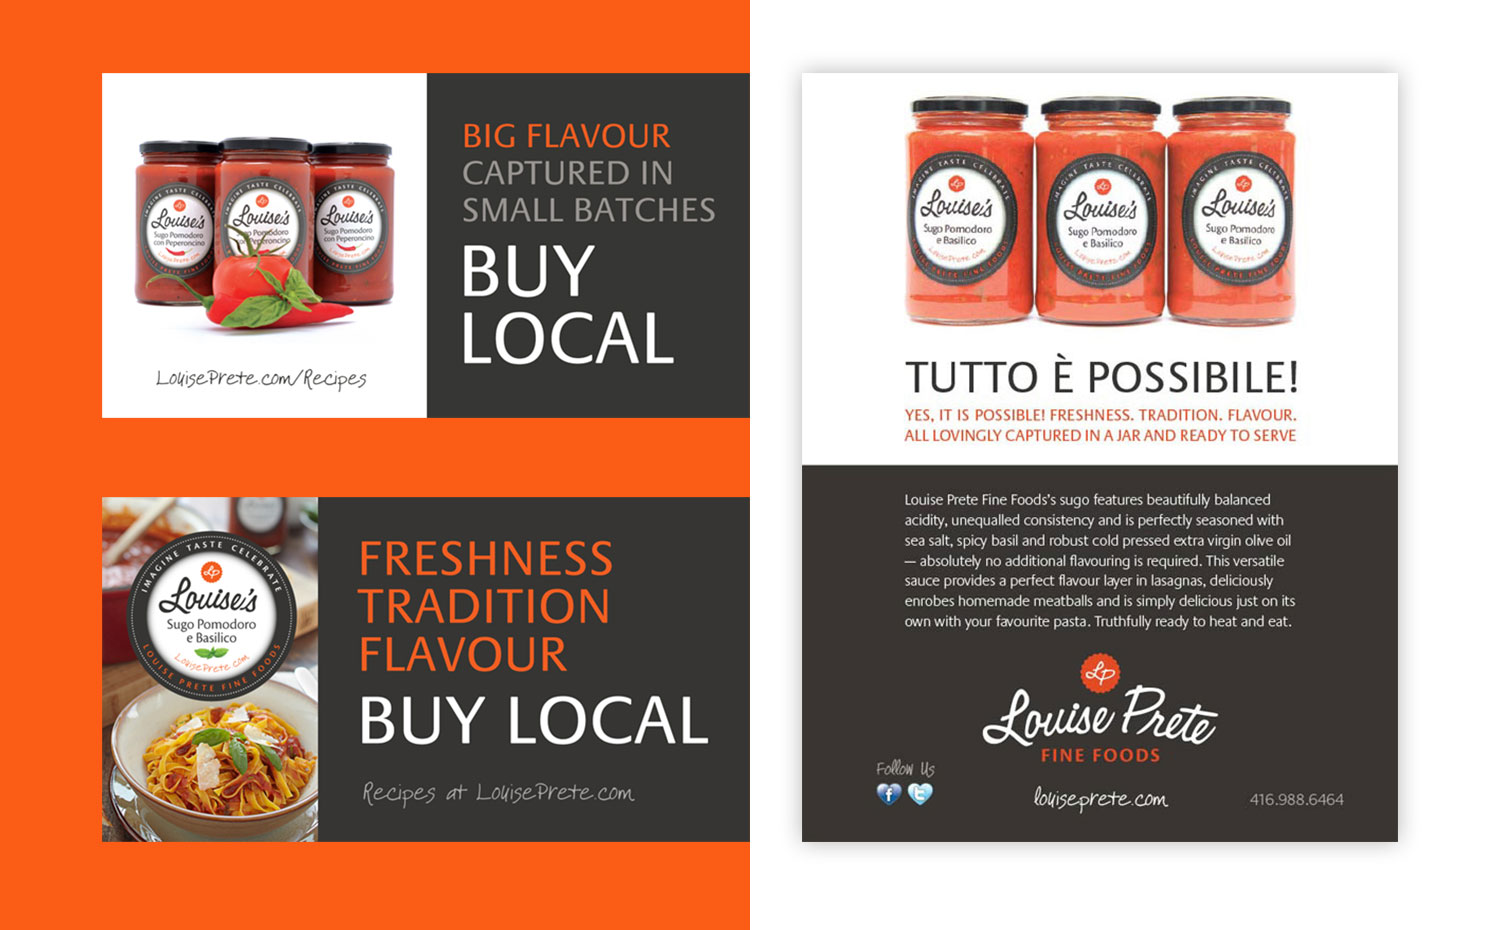 Louise Prete Fine Foods magazine ads and shelf-talkers